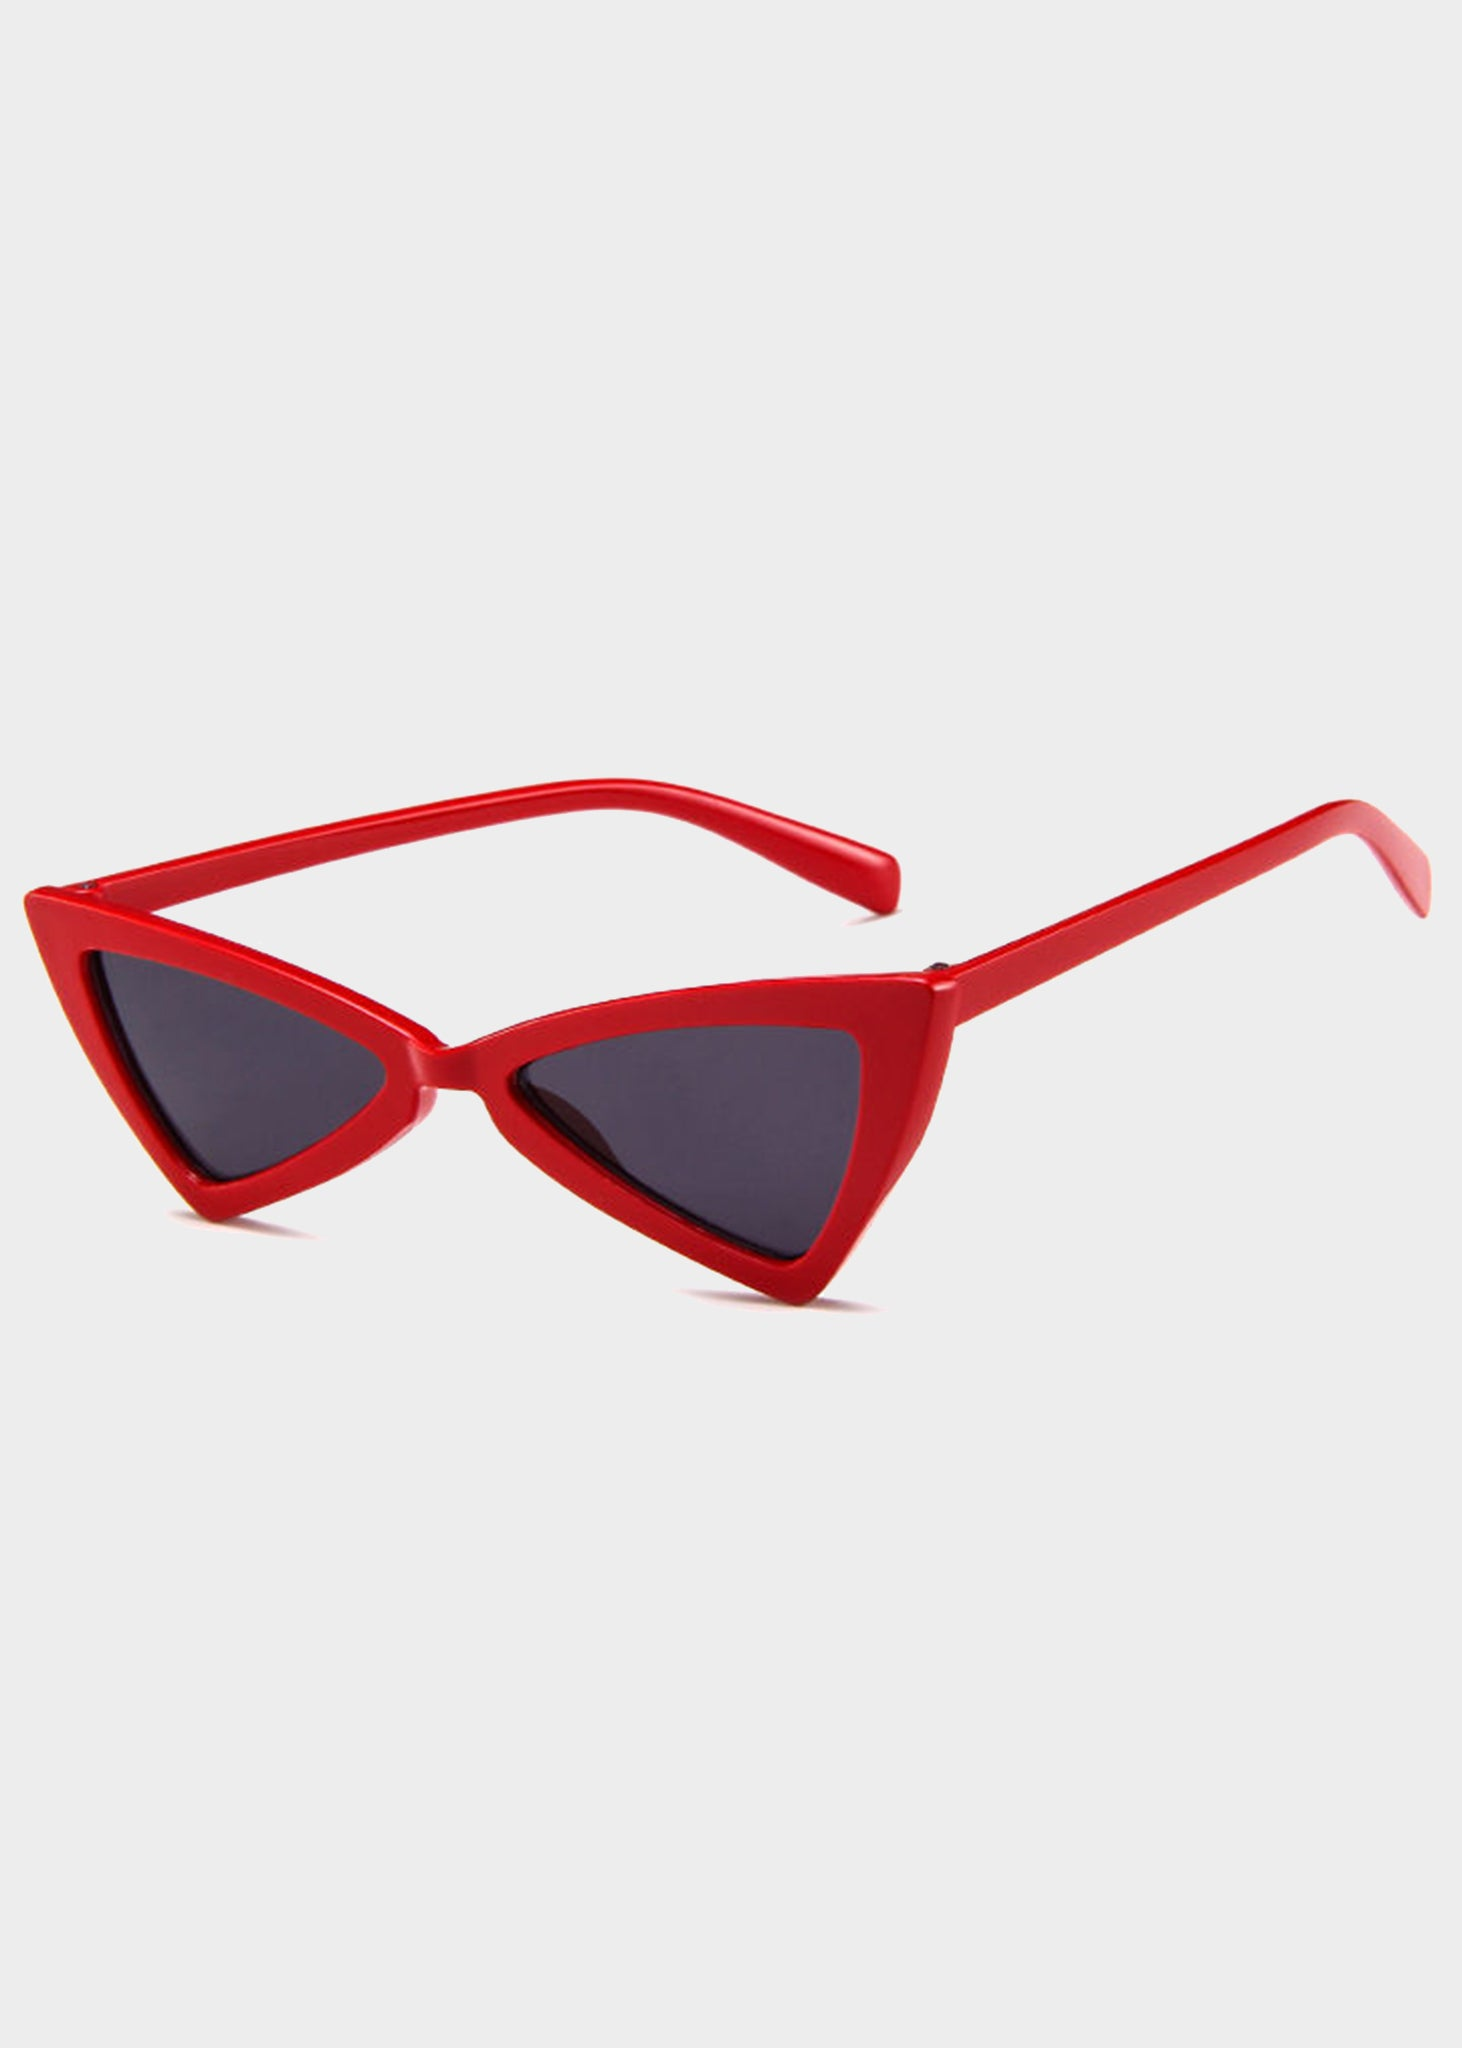 b97a1f4cea Red Tinted Triangle Cat Eye Sunglasses – ZEALO